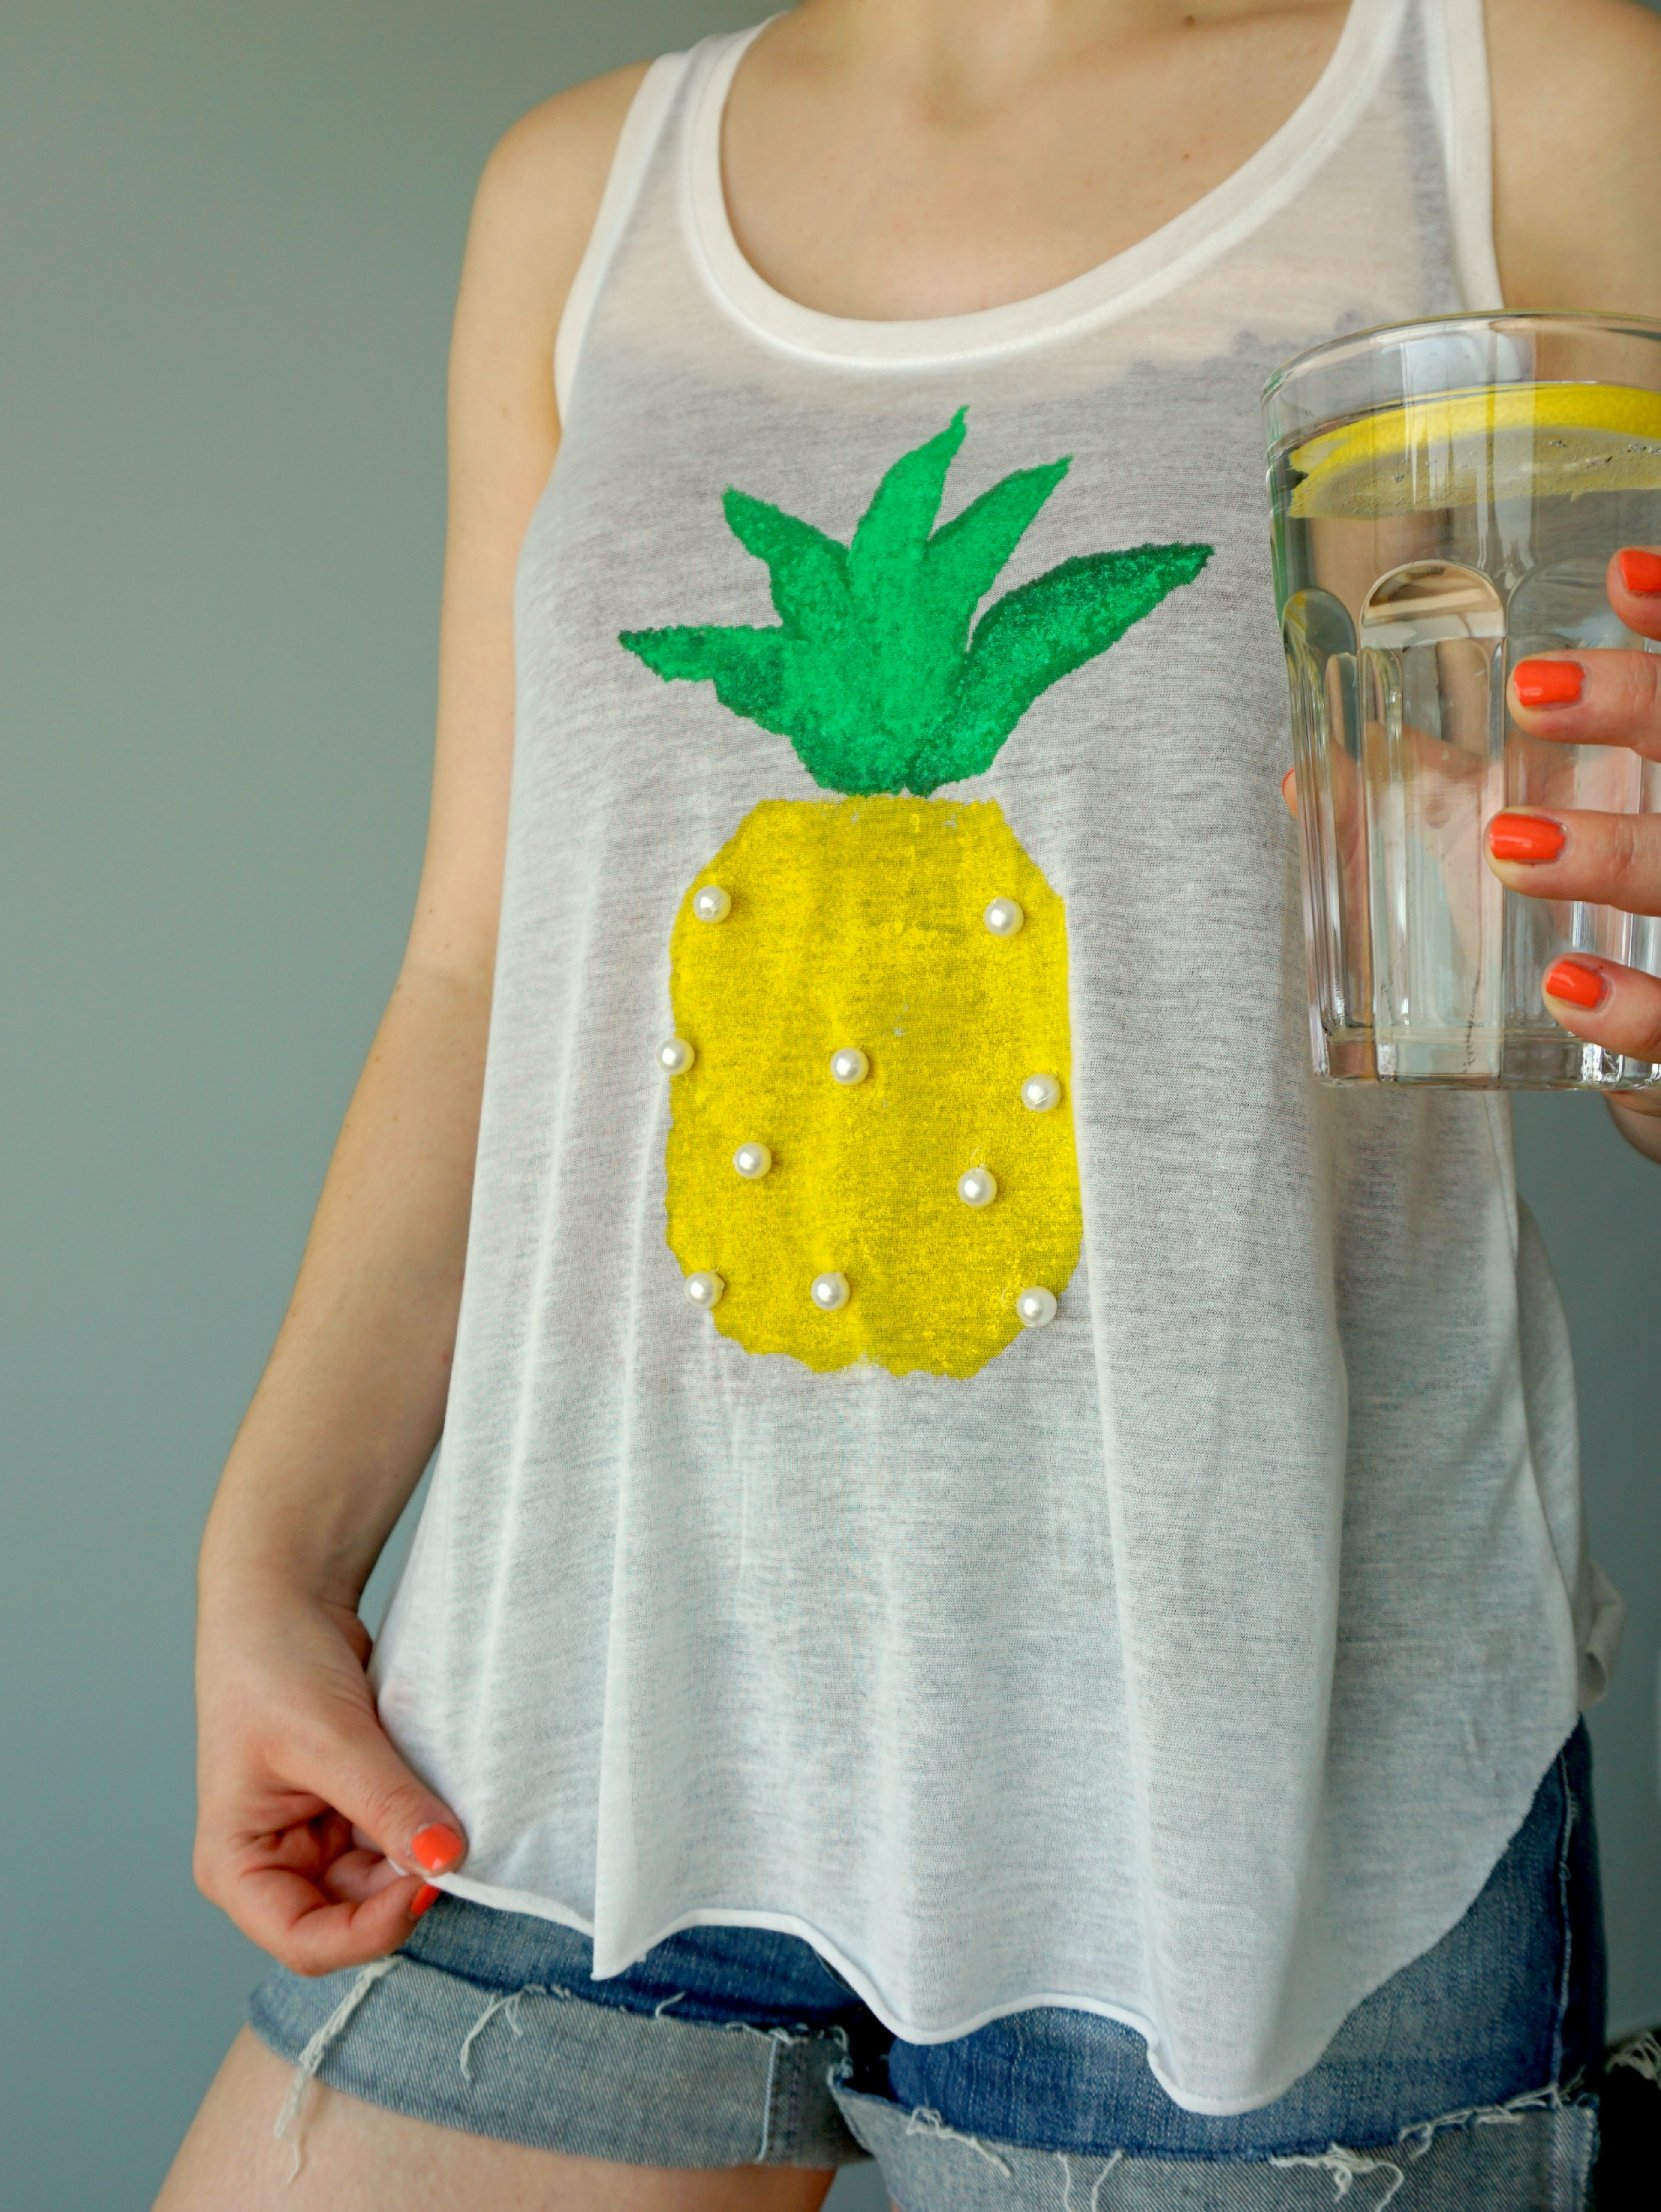 Diy pineapple print shirt tutorial the makeup dummy for How to print your own shirt